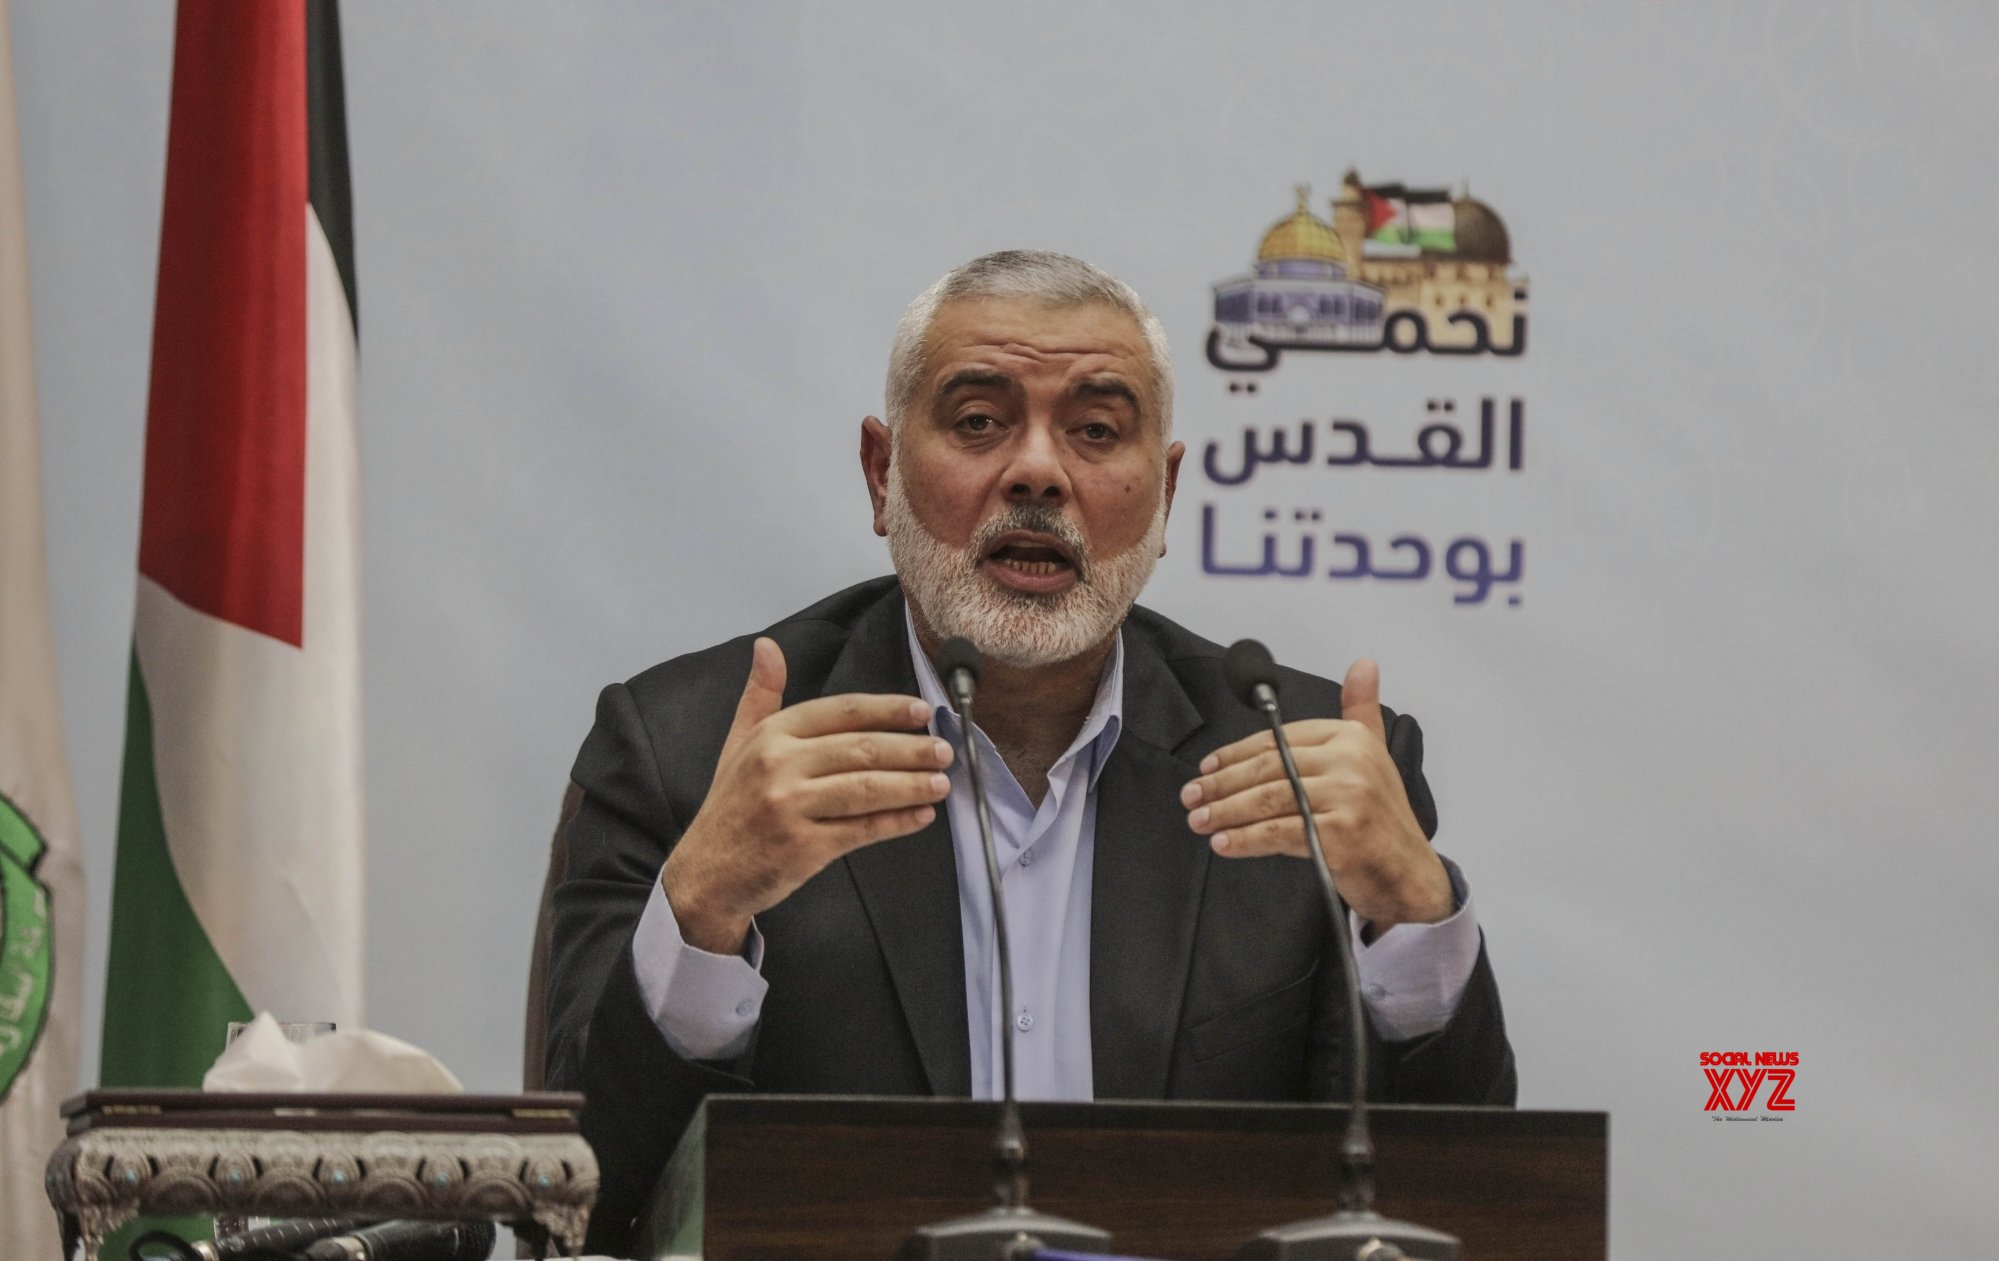 Hamas chief rejects US Mideast peace deal